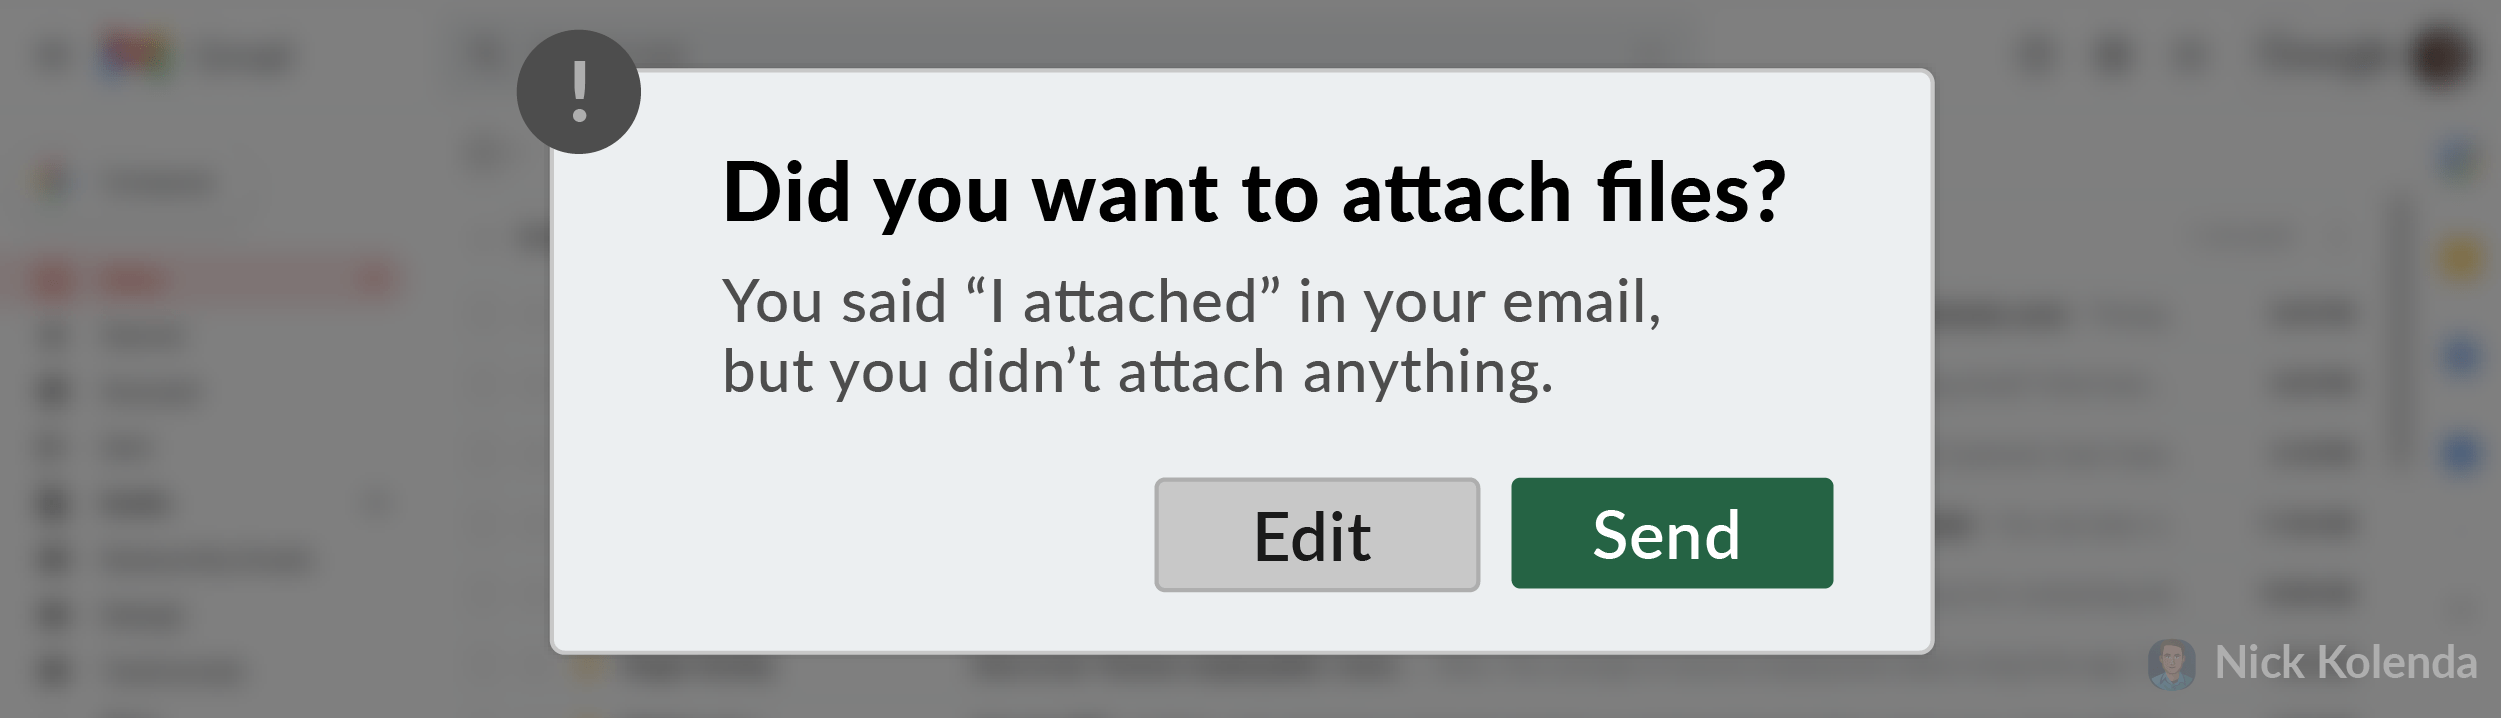 """Did you want to attach files? You said """"I attached"""" in your email."""